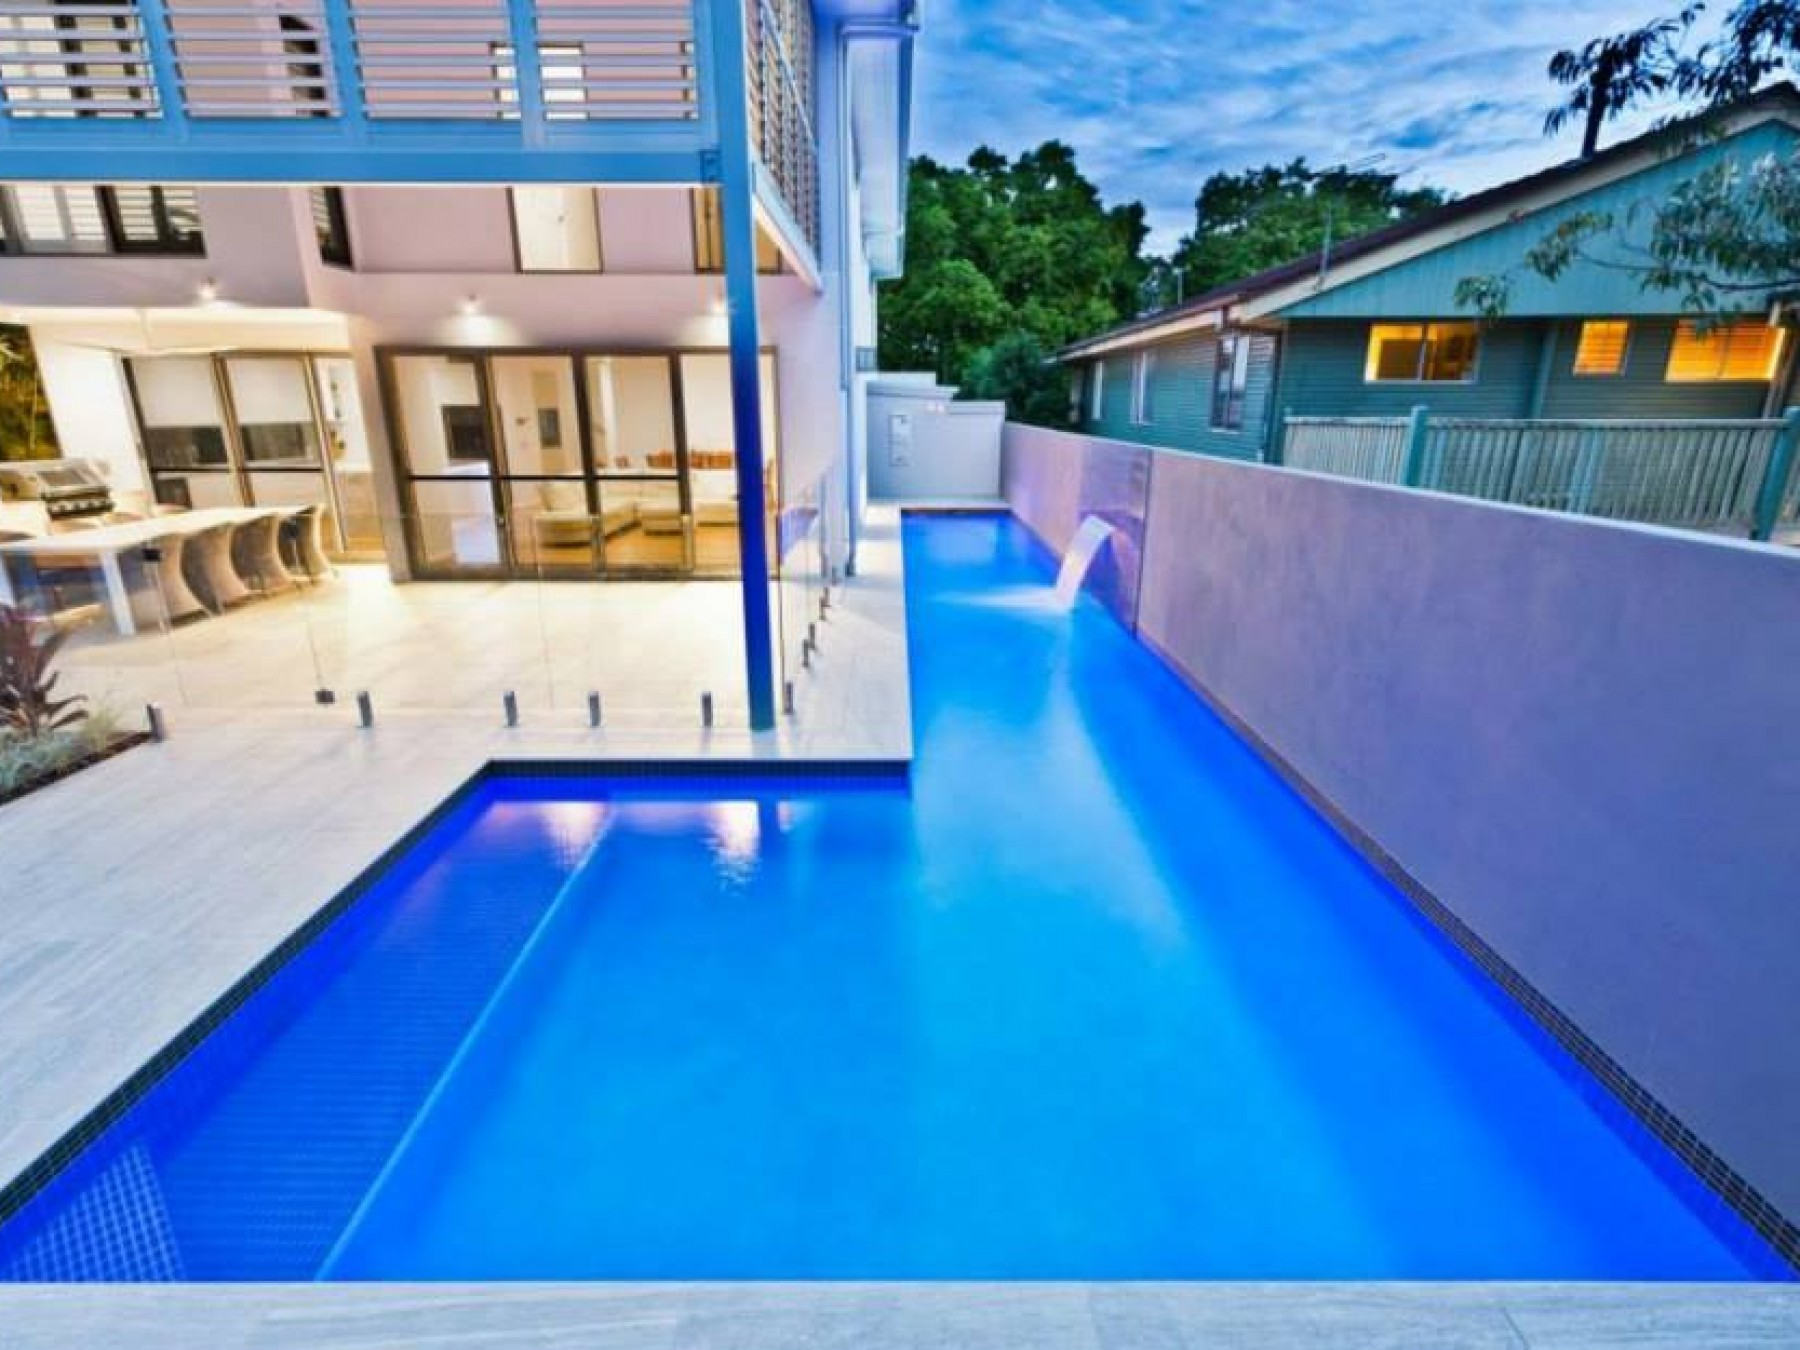 Selling or Leasing a pool in Wellers Hill